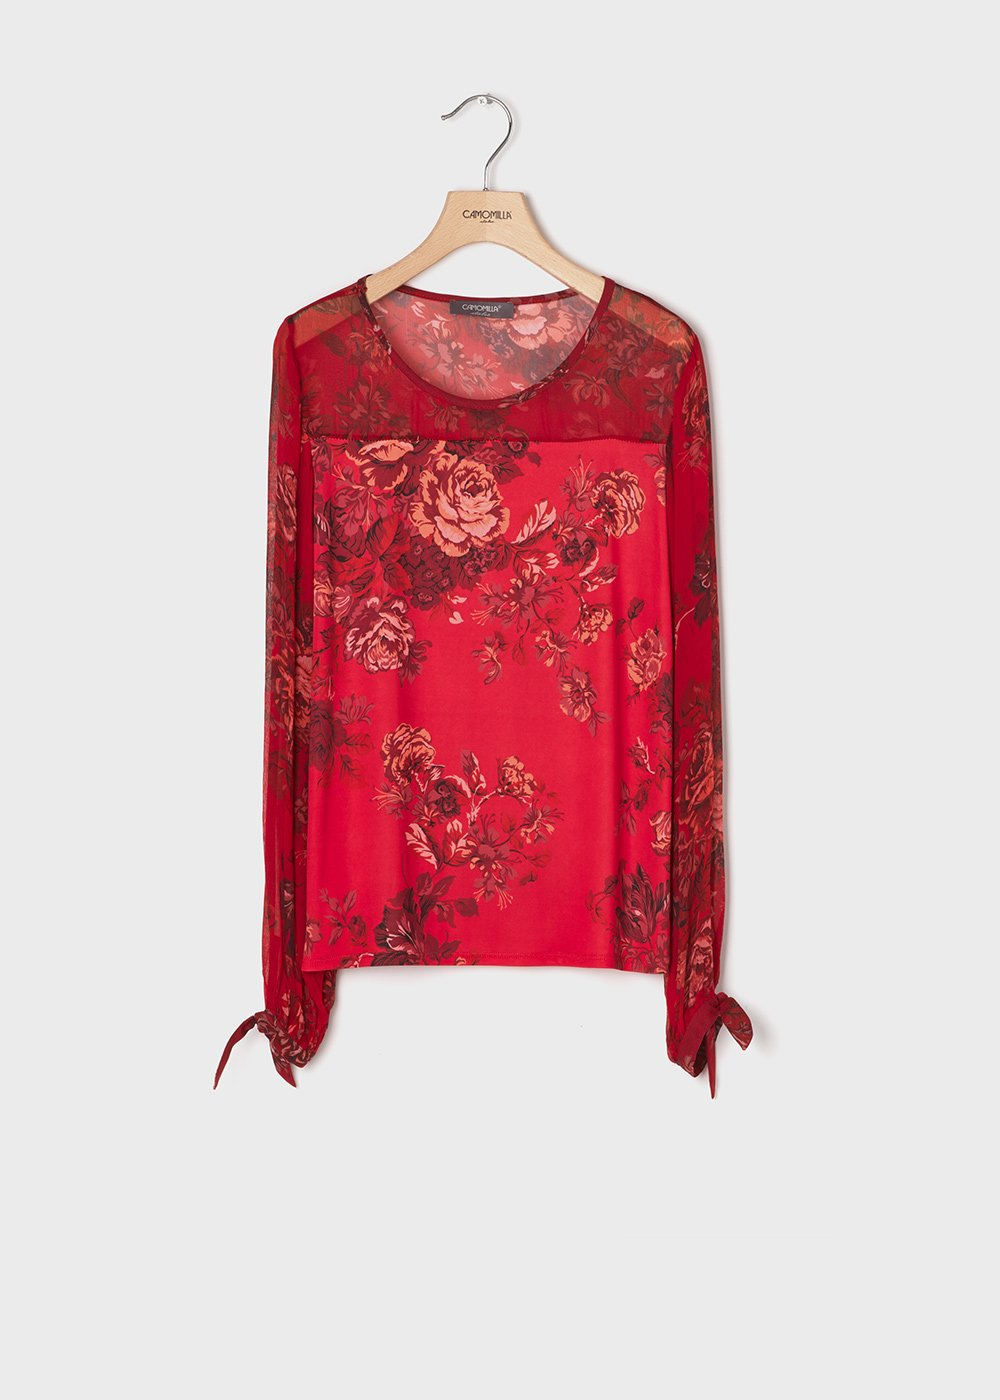 T-shirt with rose print in passion red colour - Passione / Sepia Fantasia - Woman